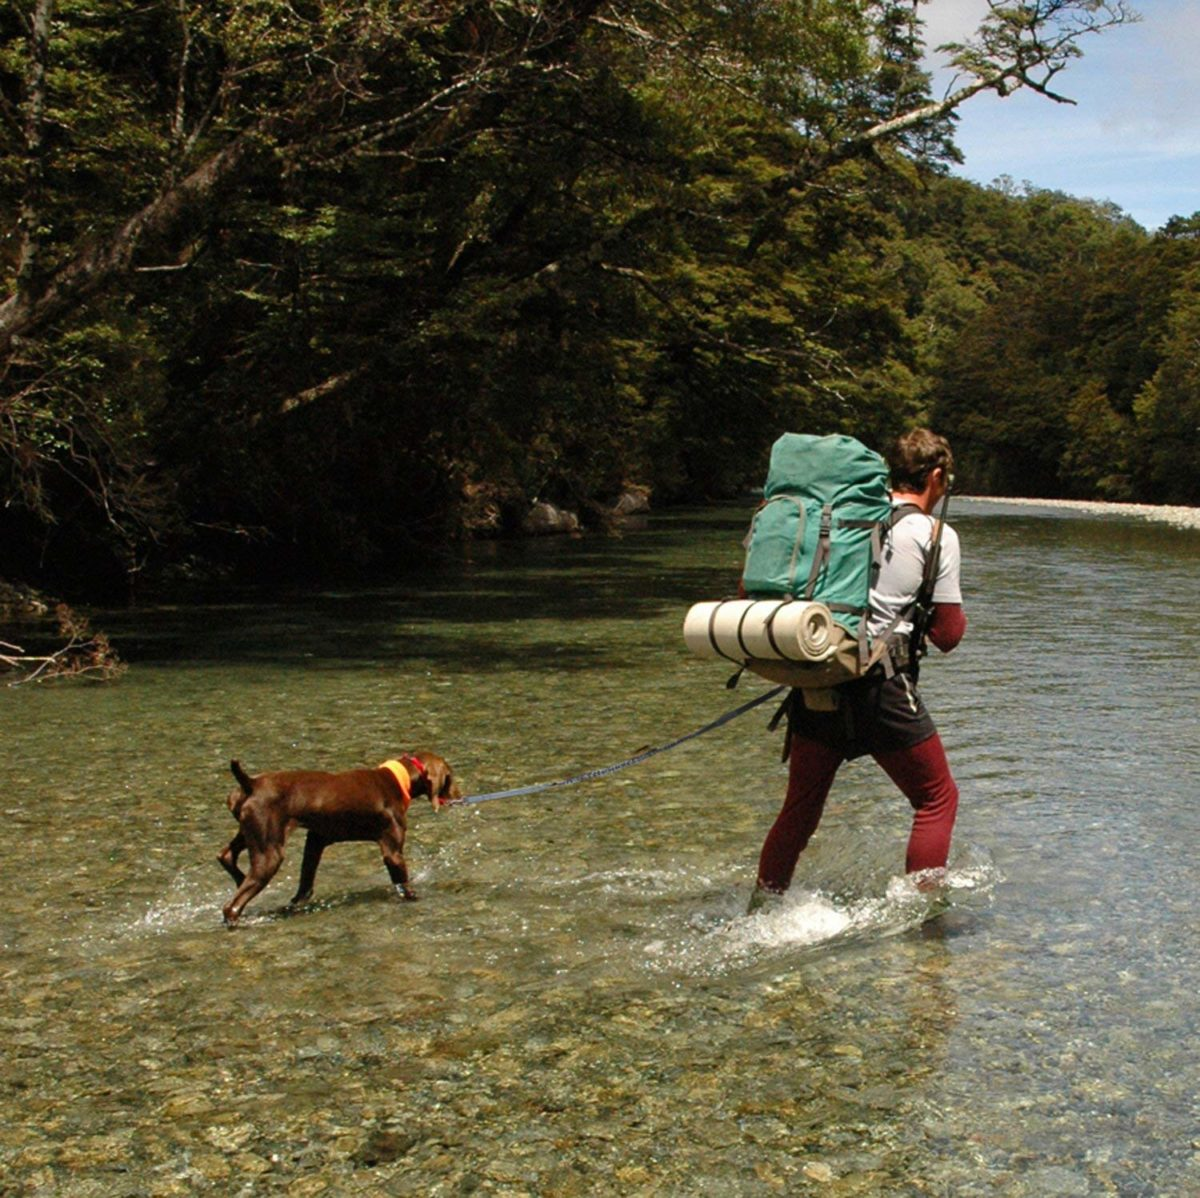 Backpacking, A Great Outdoor Activity